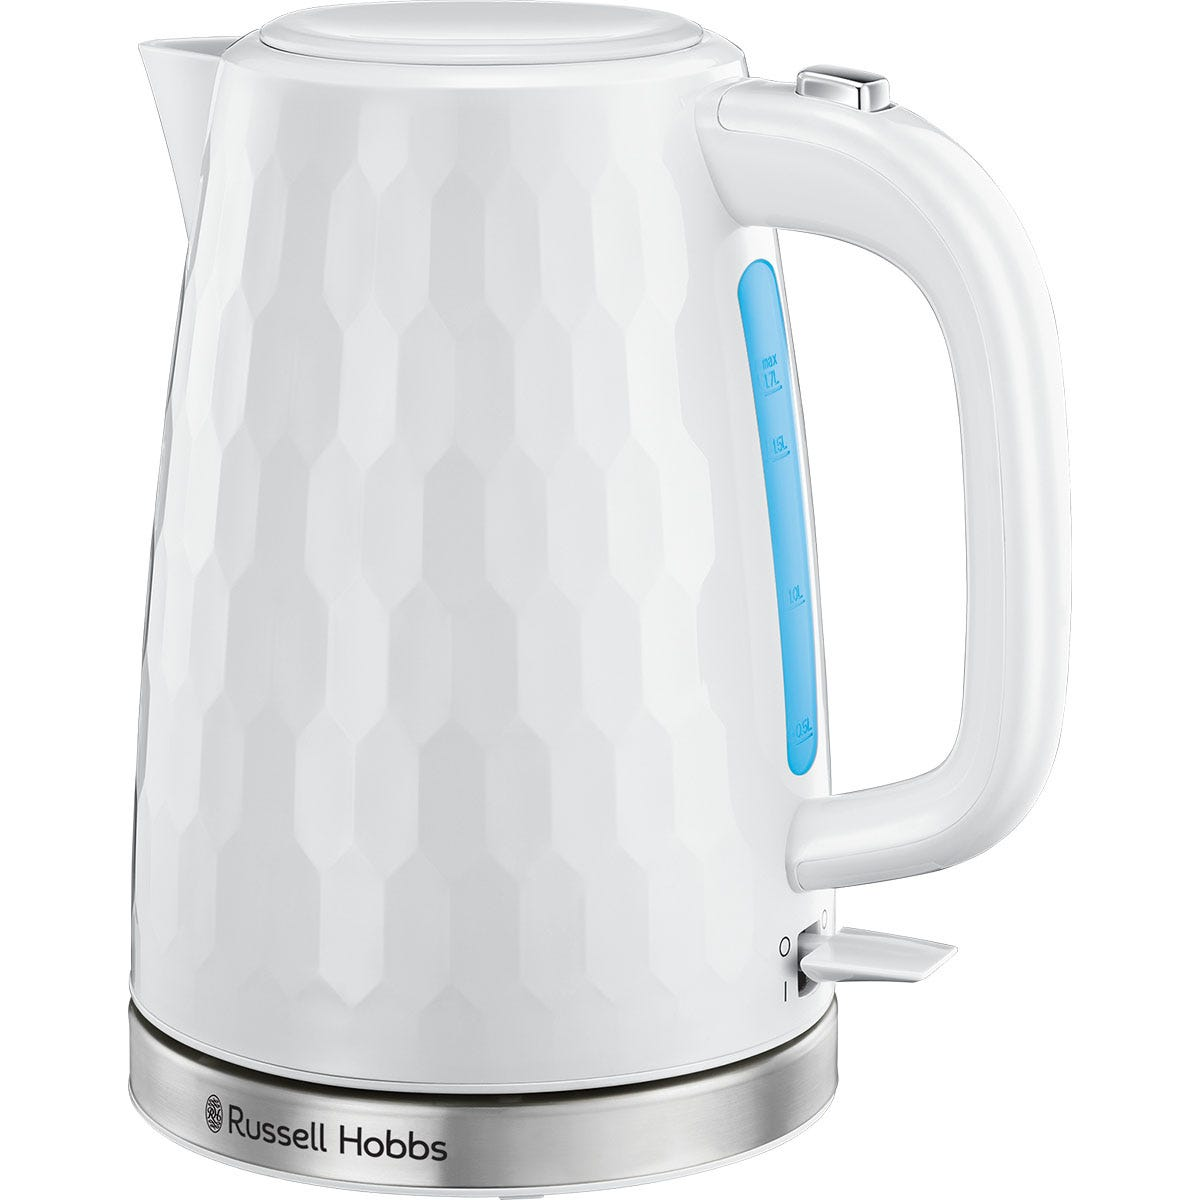 Russell Hobbs 26050 Honeycomb Textured 3000W Cordless Electric 1.7L Kettle - White